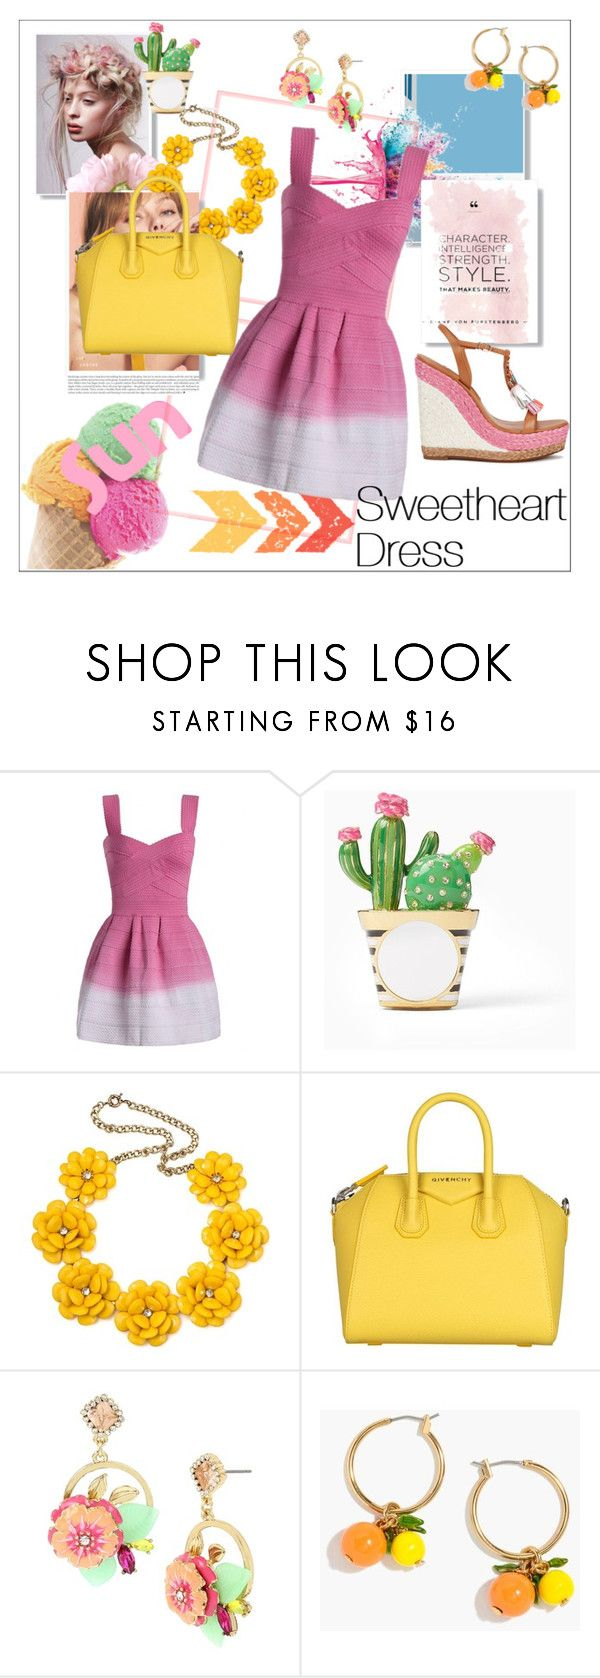 """Sweetheart Neck Ombre Mini Dress by ZAFUL"" by moody-board ❤ liked on Polyvore featuring Givenchy, Kate Spade, Betsey Johnson, J.Crew and Sophia Webster"